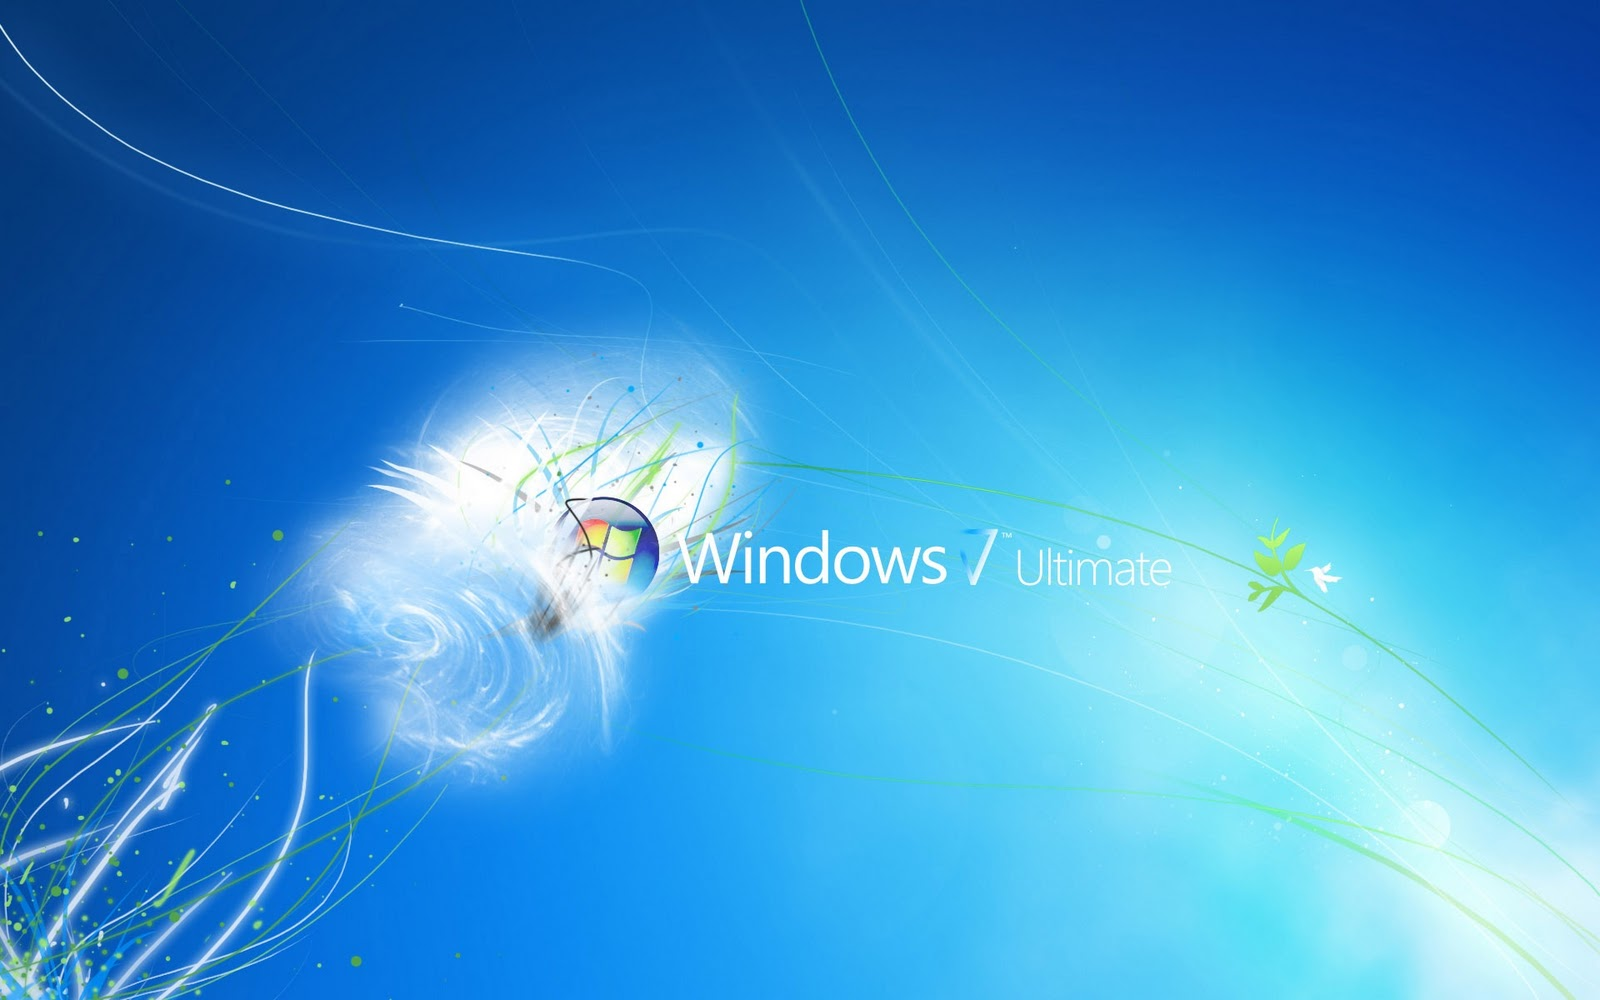 3D Live Wallpaper Windows 10 - WallpaperSafari